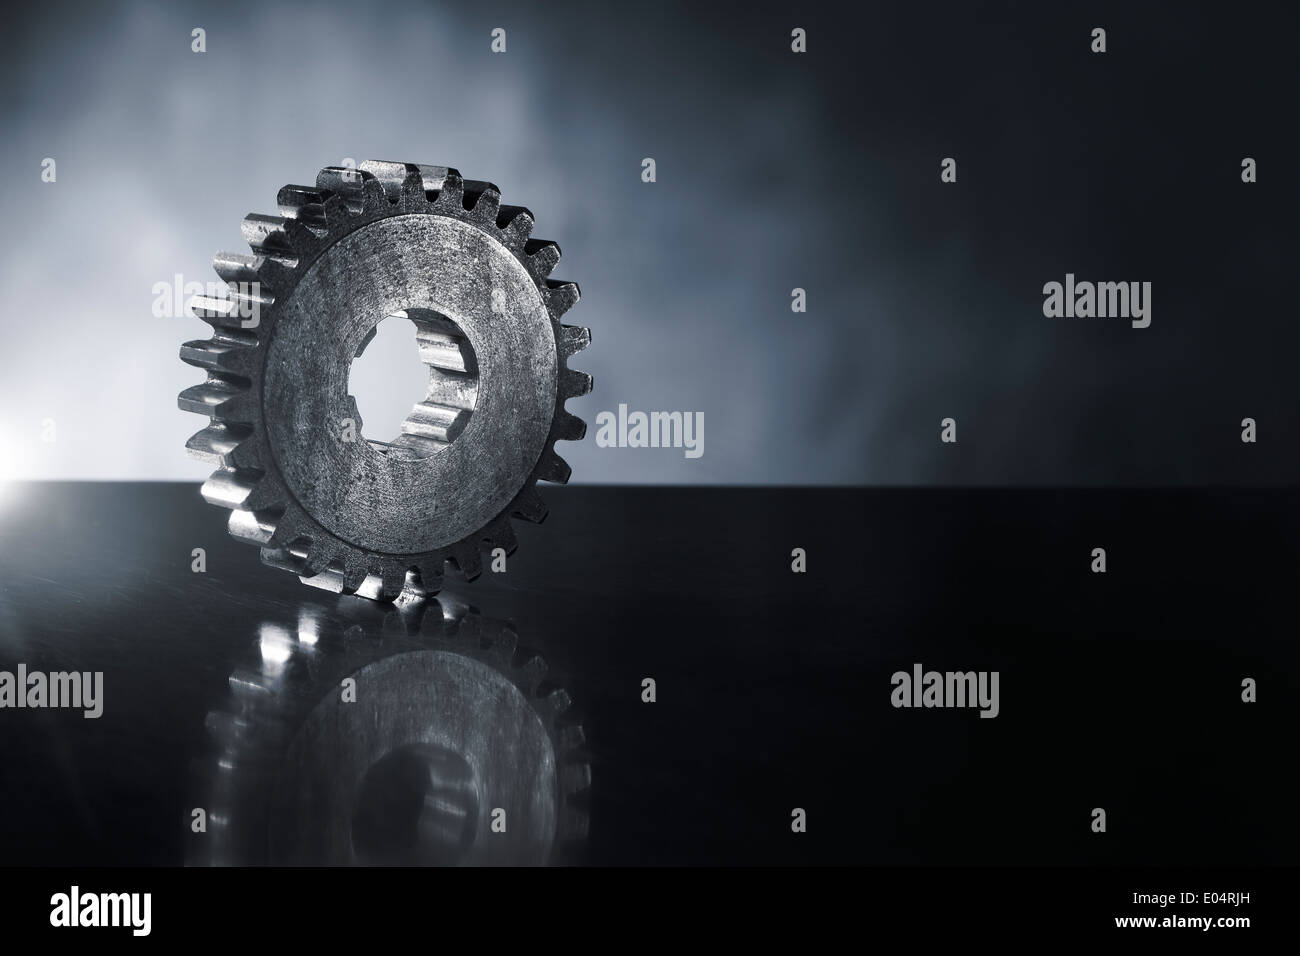 Old cog gear wheel on reflecting metal background. Short depth-of-field. - Stock Image